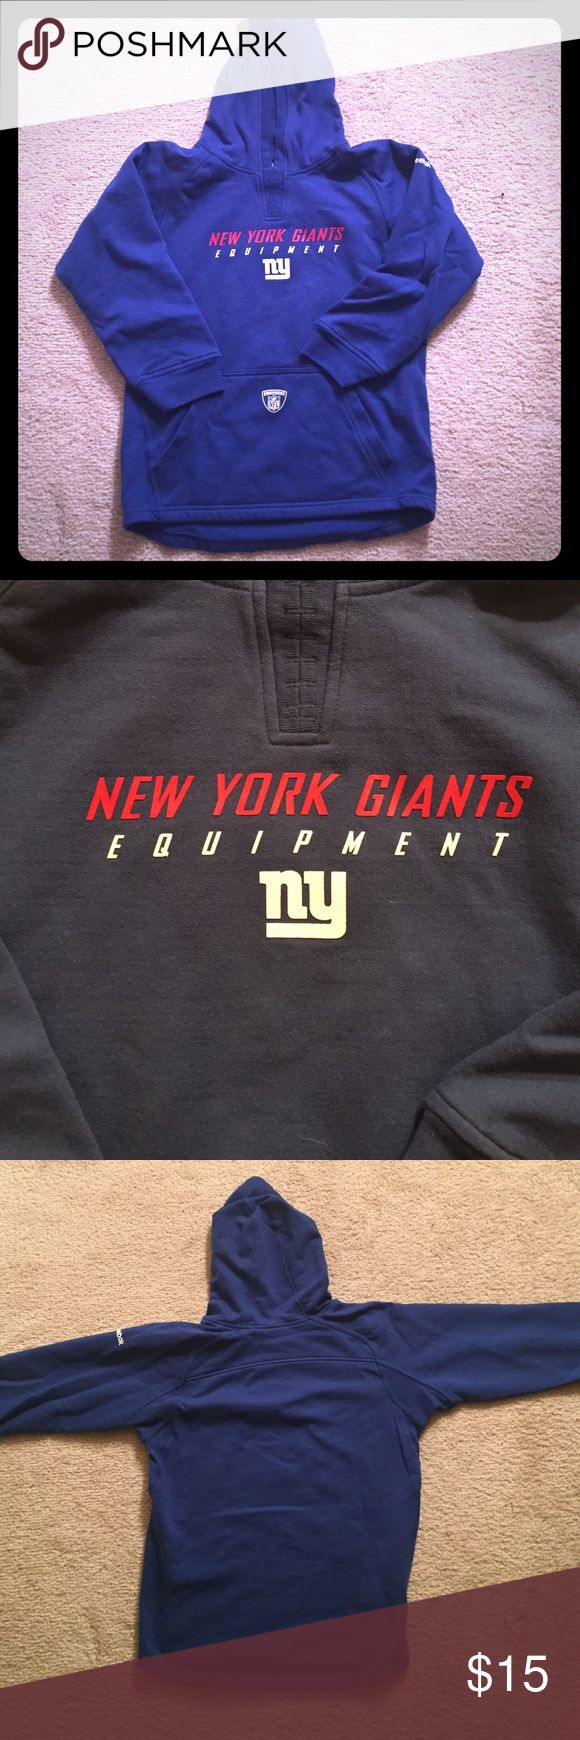 Children's sweatshirt NY Giants sweatshirt. In good condition with good and front pouch. Size medium (10-12) but will also fit a ladies XS. Reebok Shirts & Tops Sweatshirts & Hoodies